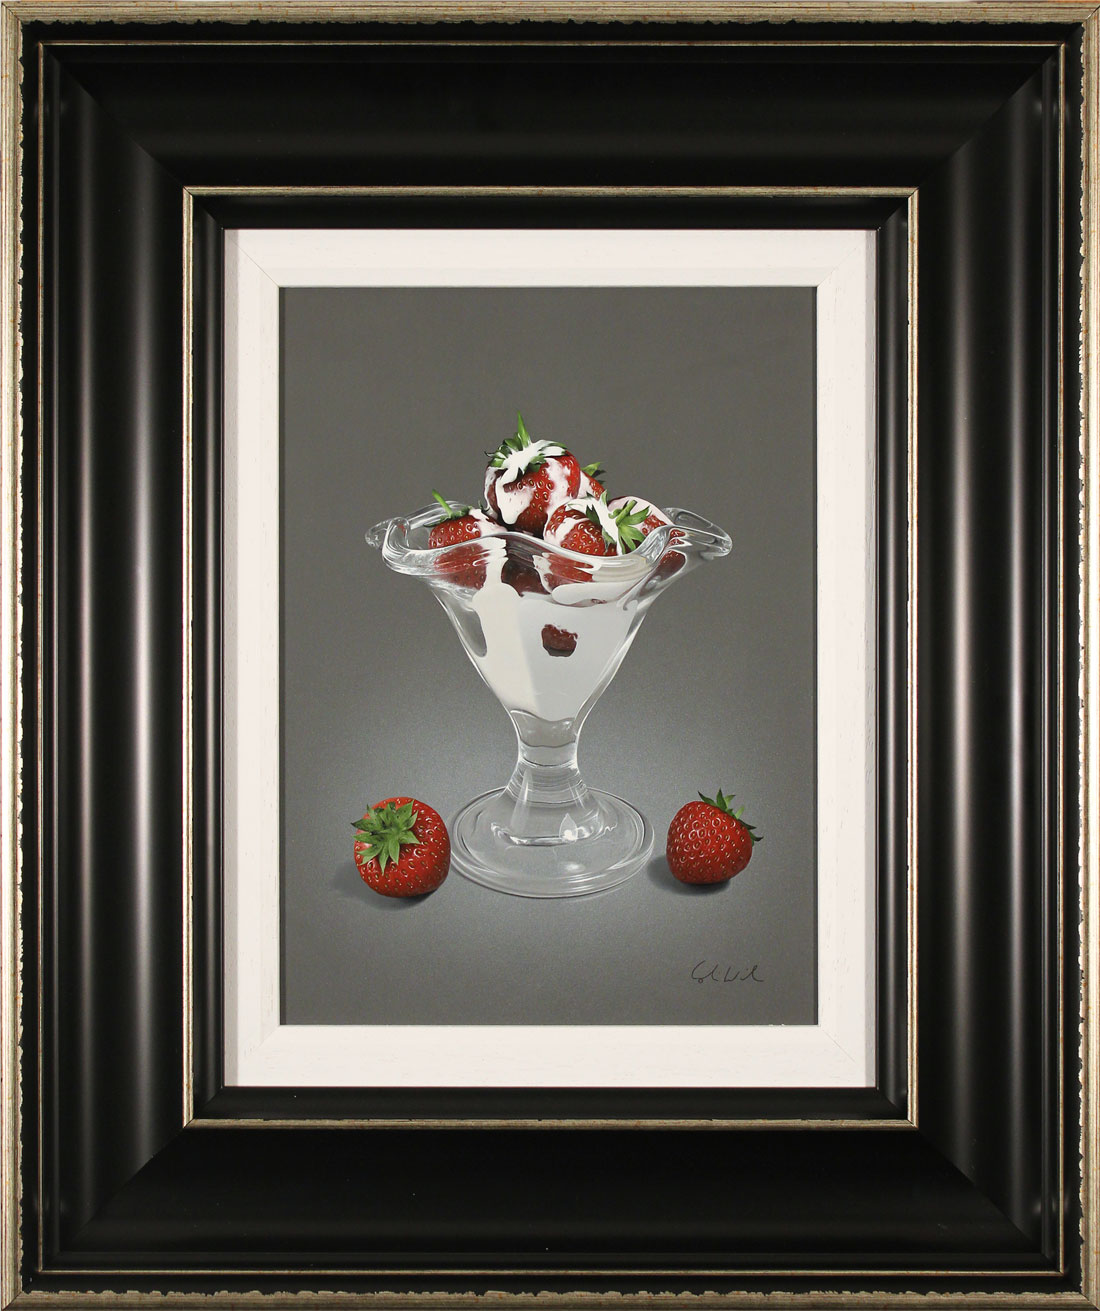 Colin Wilson, Original acrylic painting on board, Strawberries and Cream Click to enlarge